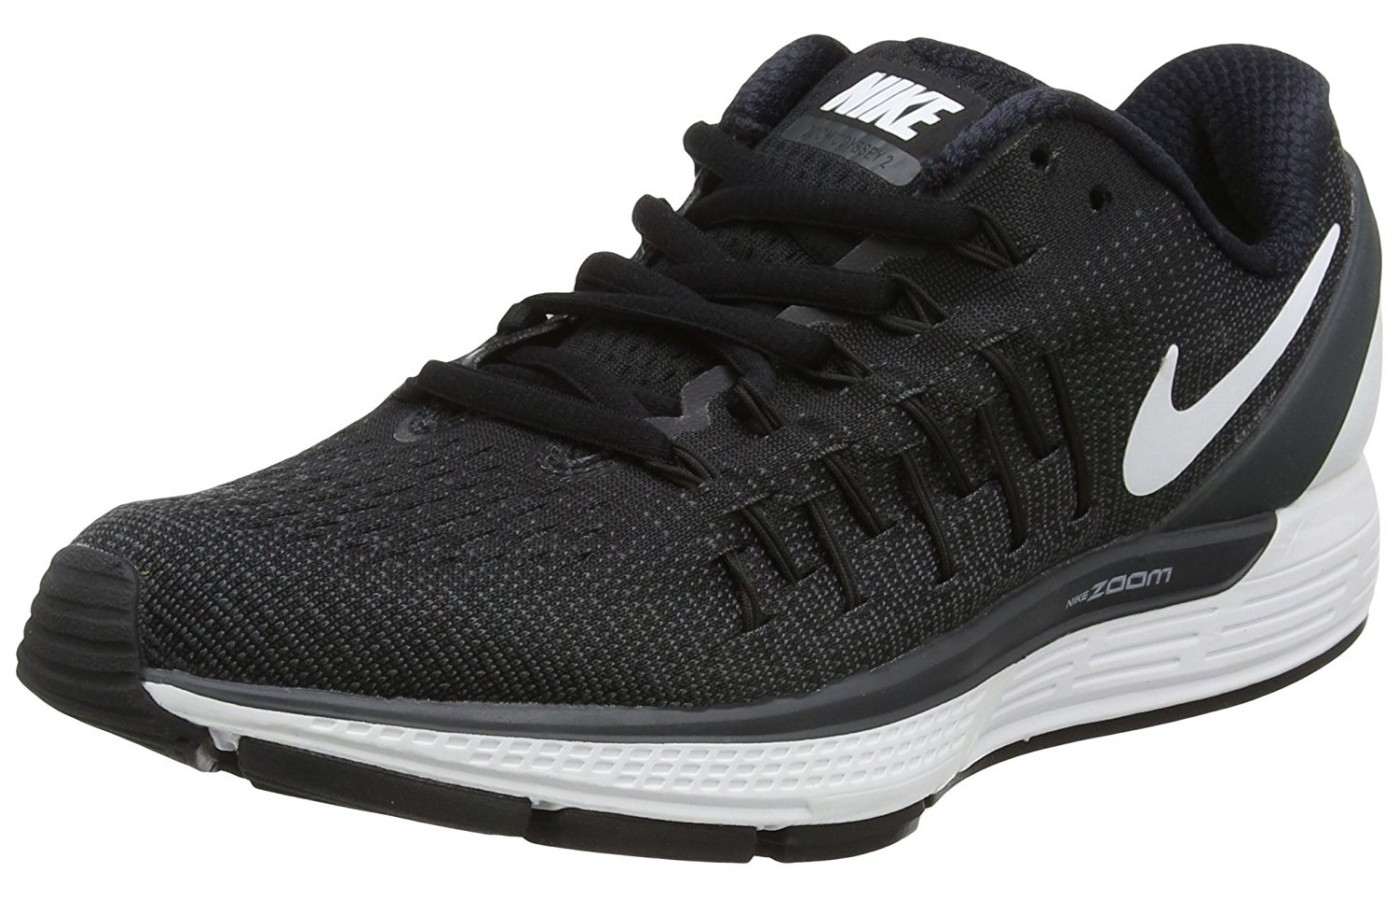 Nike Air Zoom Odyssey 2 angled